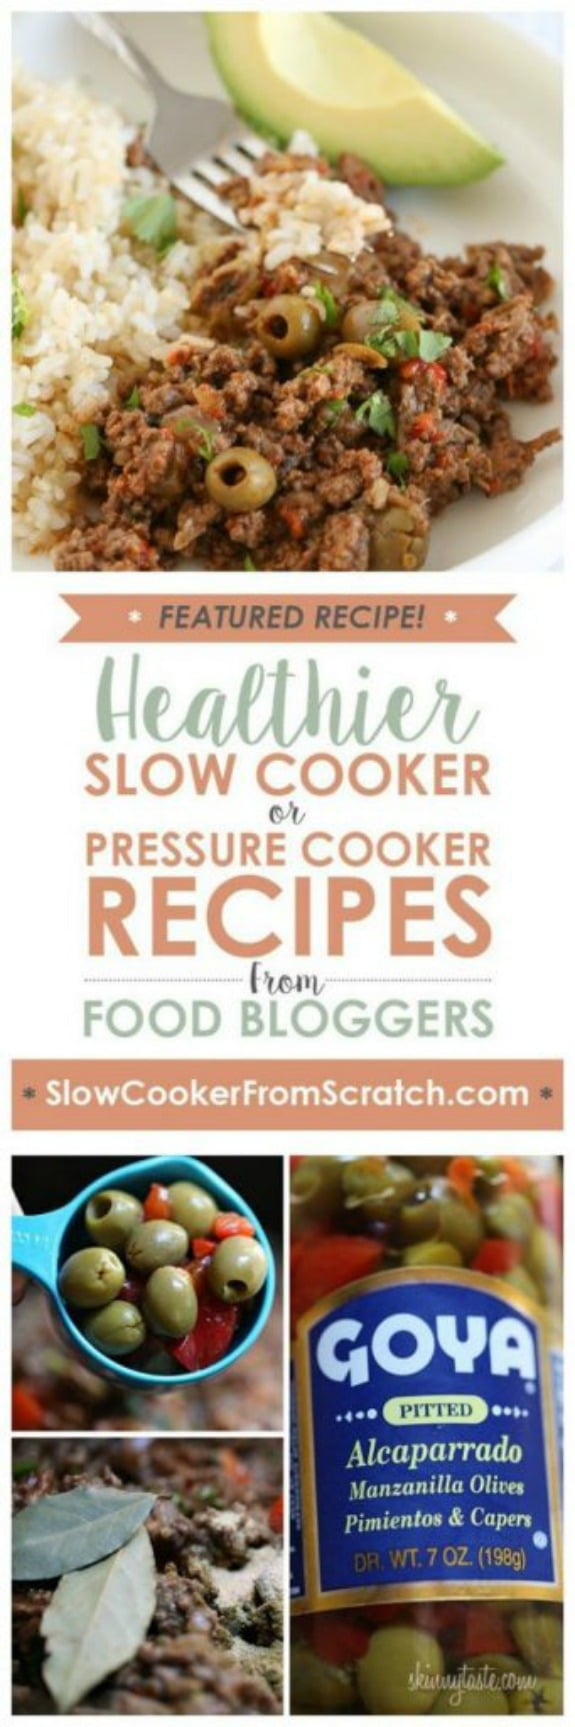 CrockPot, Instant Pot, or Stovetop Cuban Picadillo from Skinnytaste featured on Slow Cooker or Pressure Cooker at SlowCookerFromScratch.com